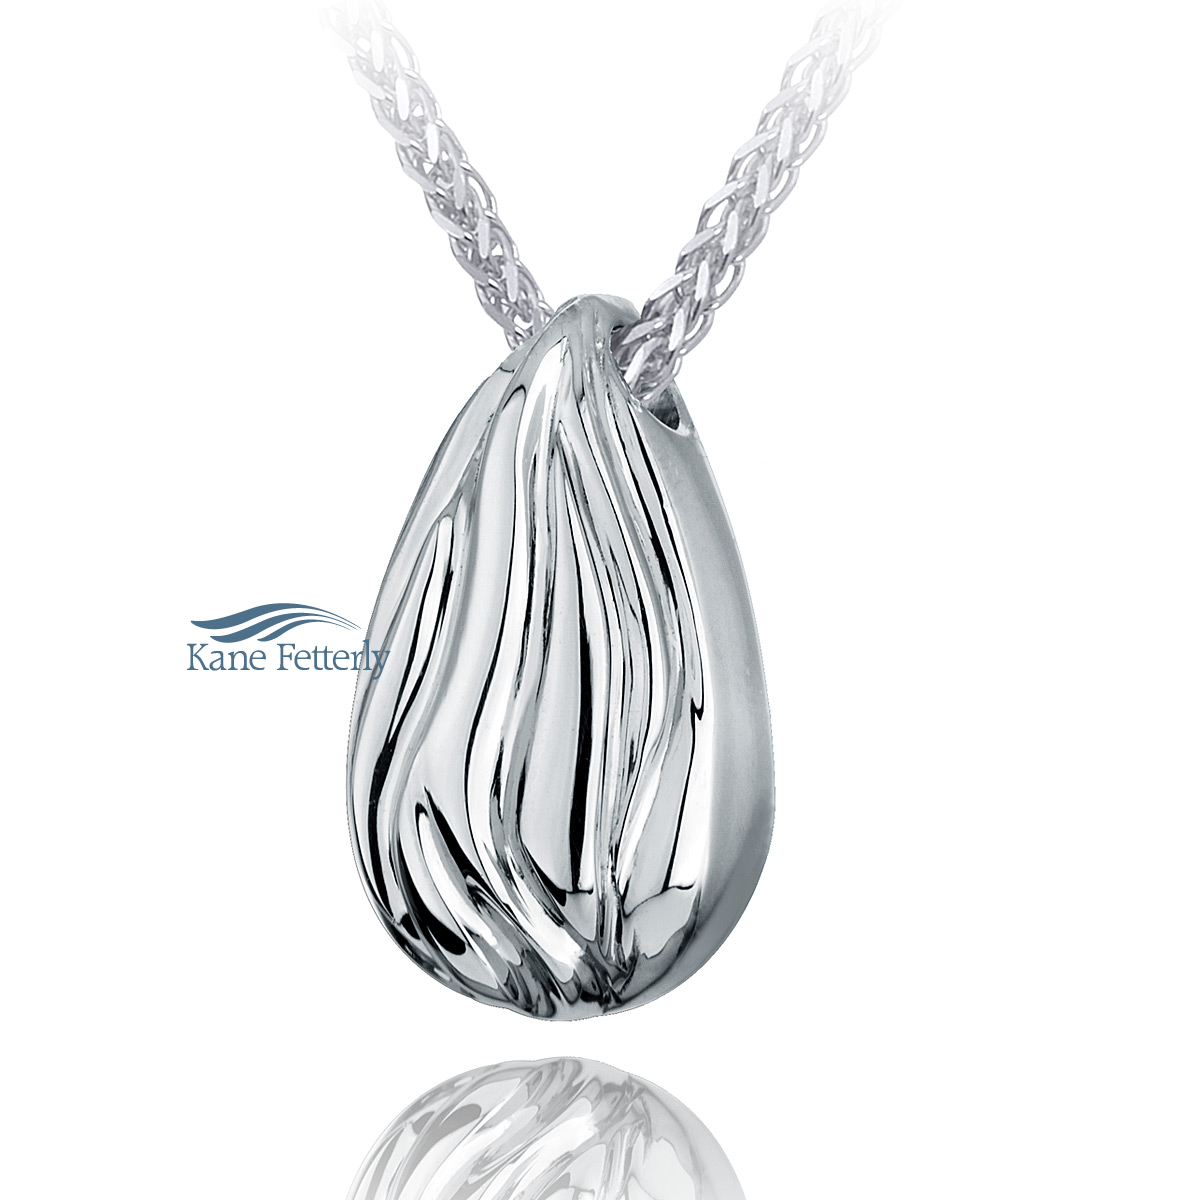 J0125 Teardrop pendant in sterling silver